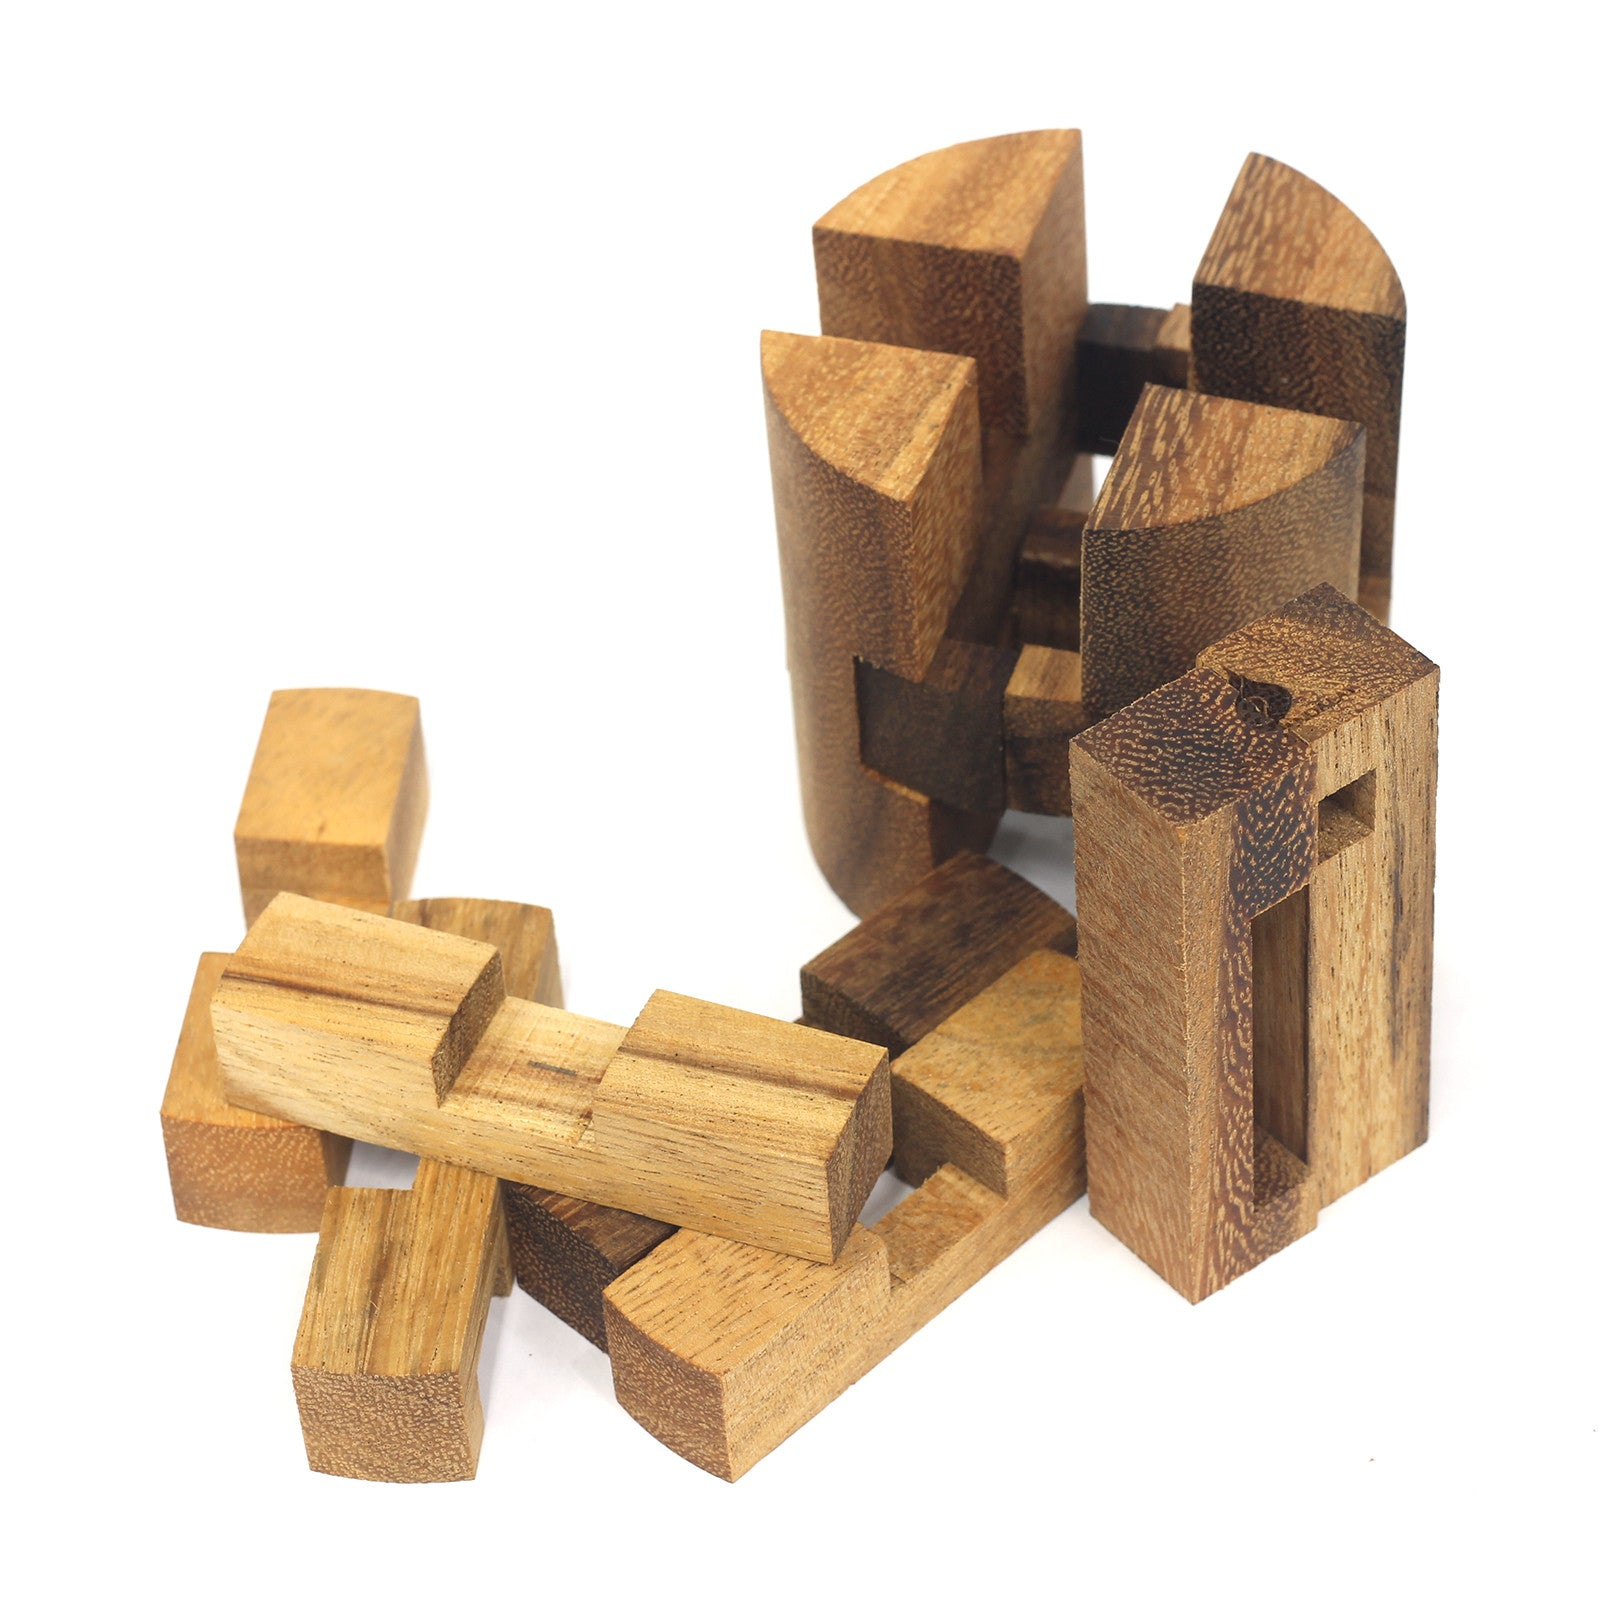 Wooden Powder Keg Puzzle